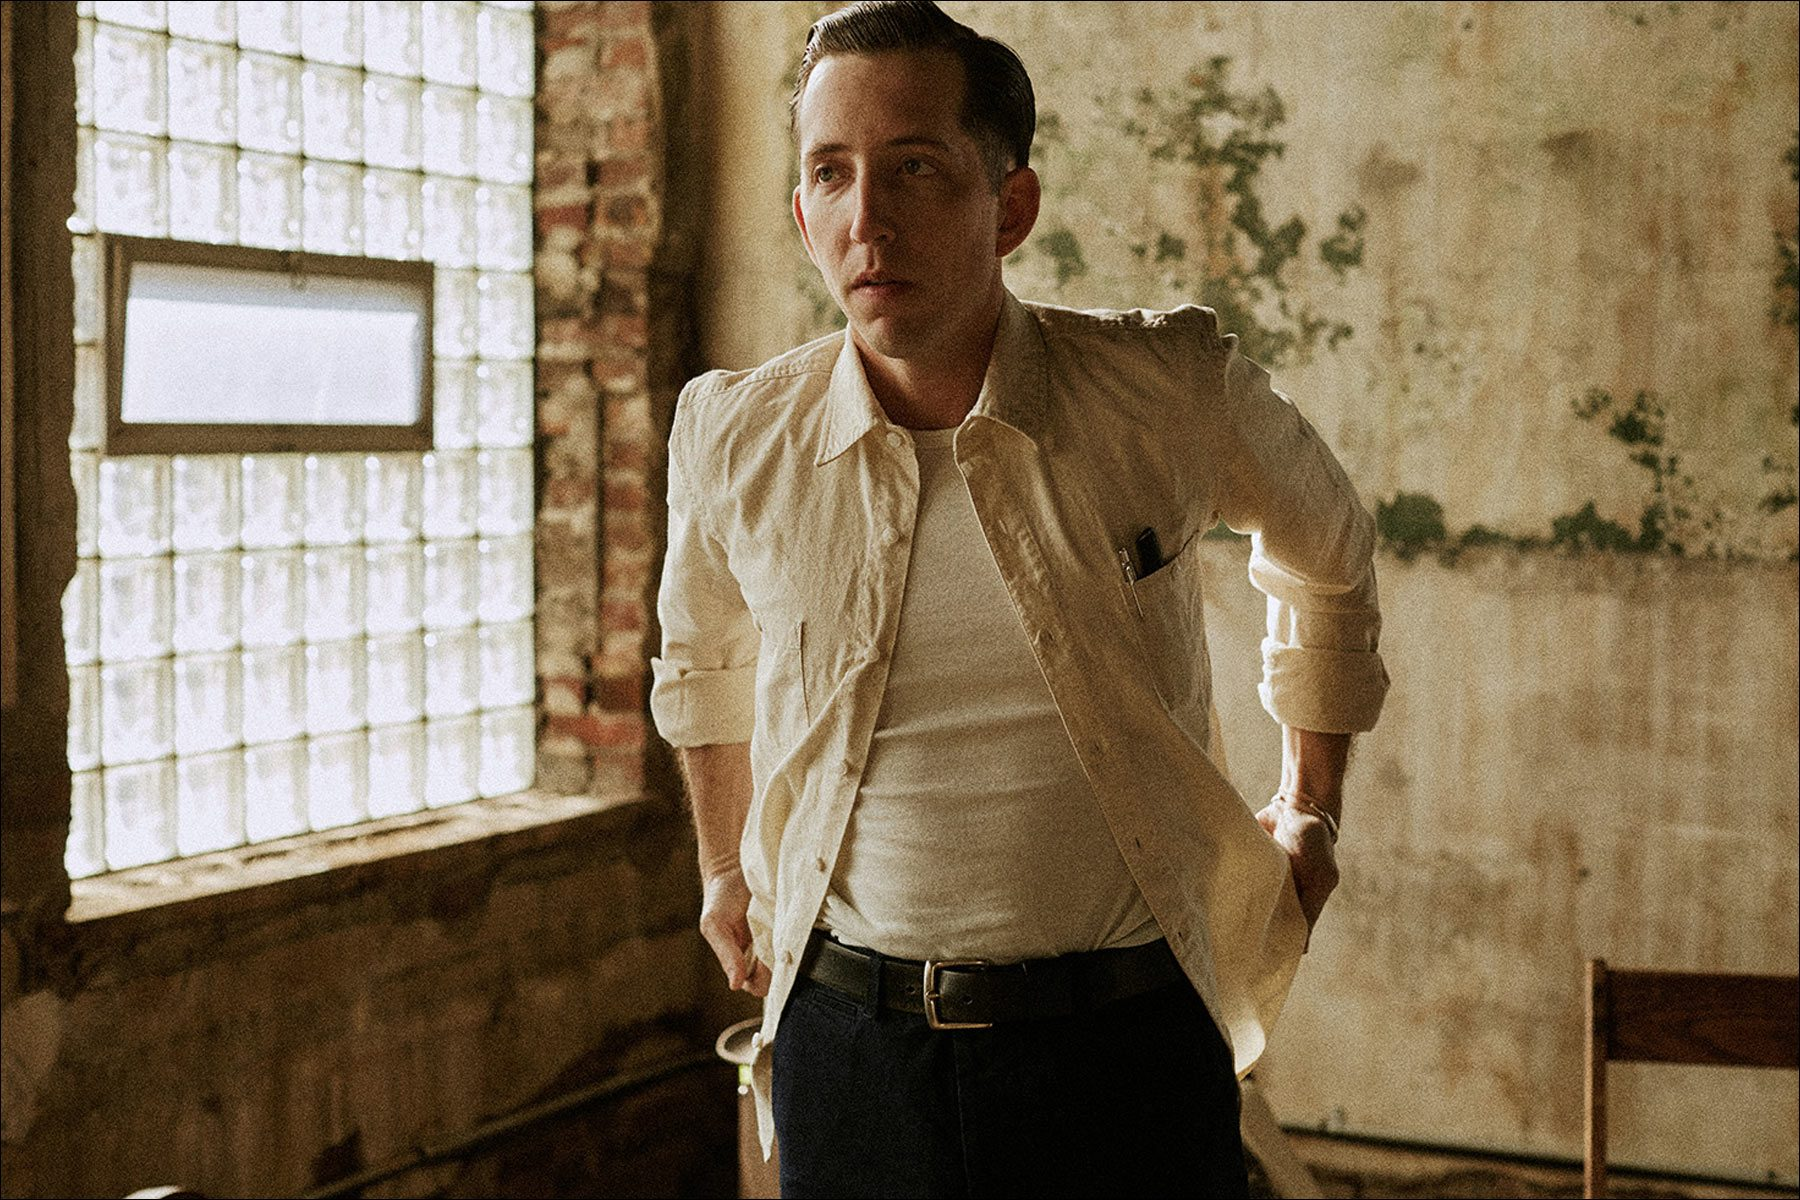 Musician Pokey Lafarge's collaboration with clothing label Knickerbocker Mfg. Co. Photographed by Noah Sahady. Ponyboy magazine.